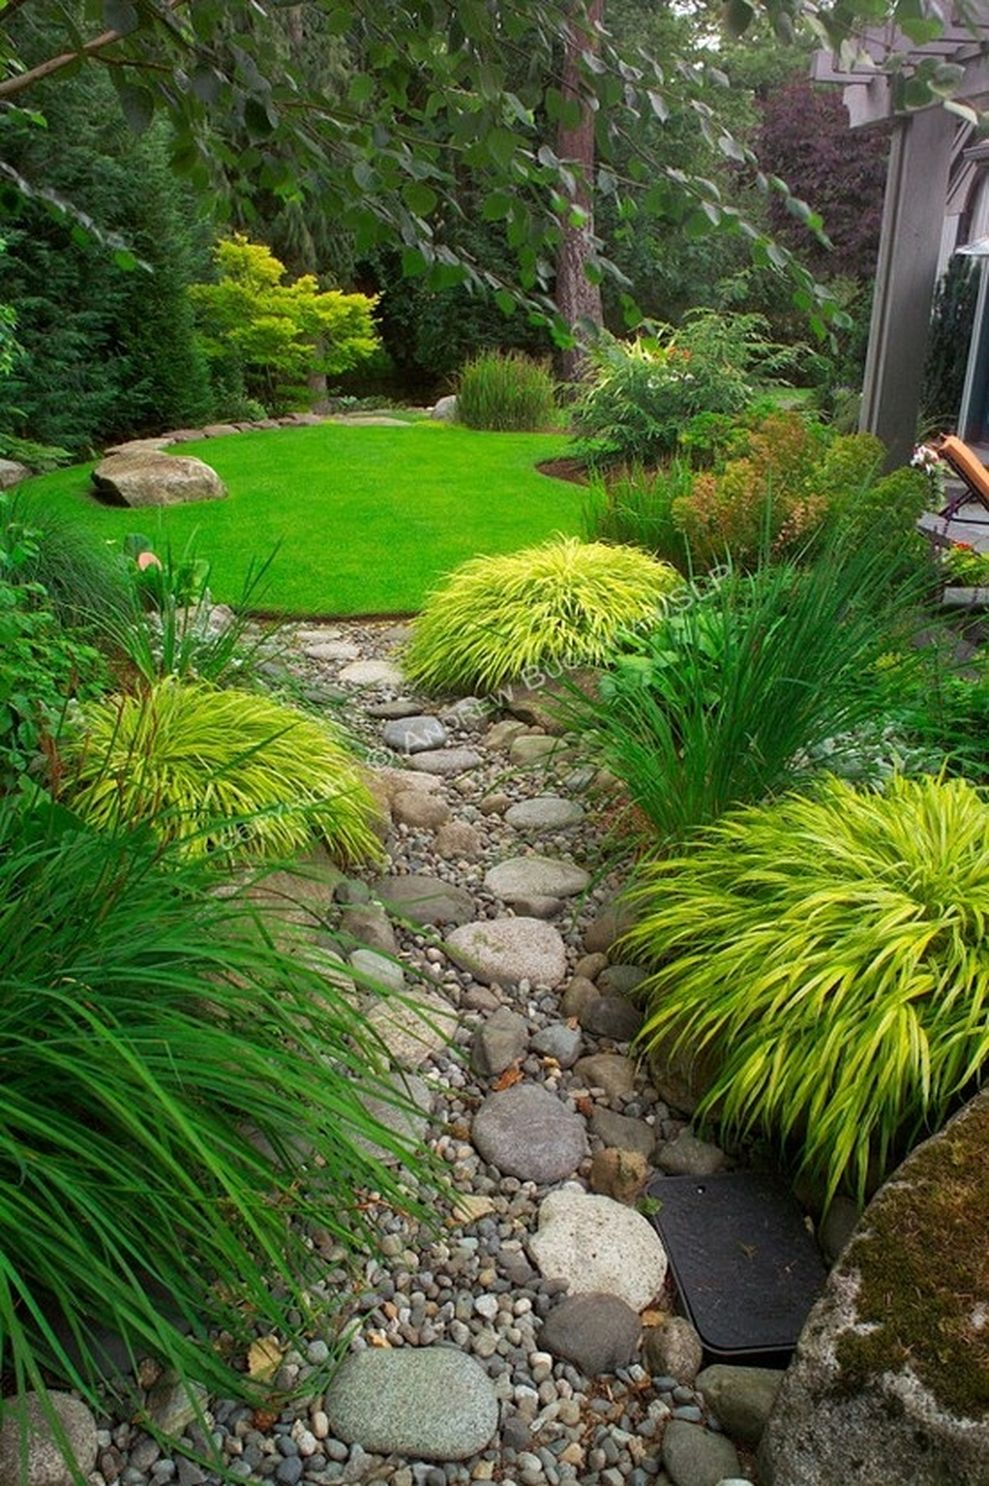 Inspiring small japanese garden design ideas 54 roundecor - Small japanese garden ideas ...